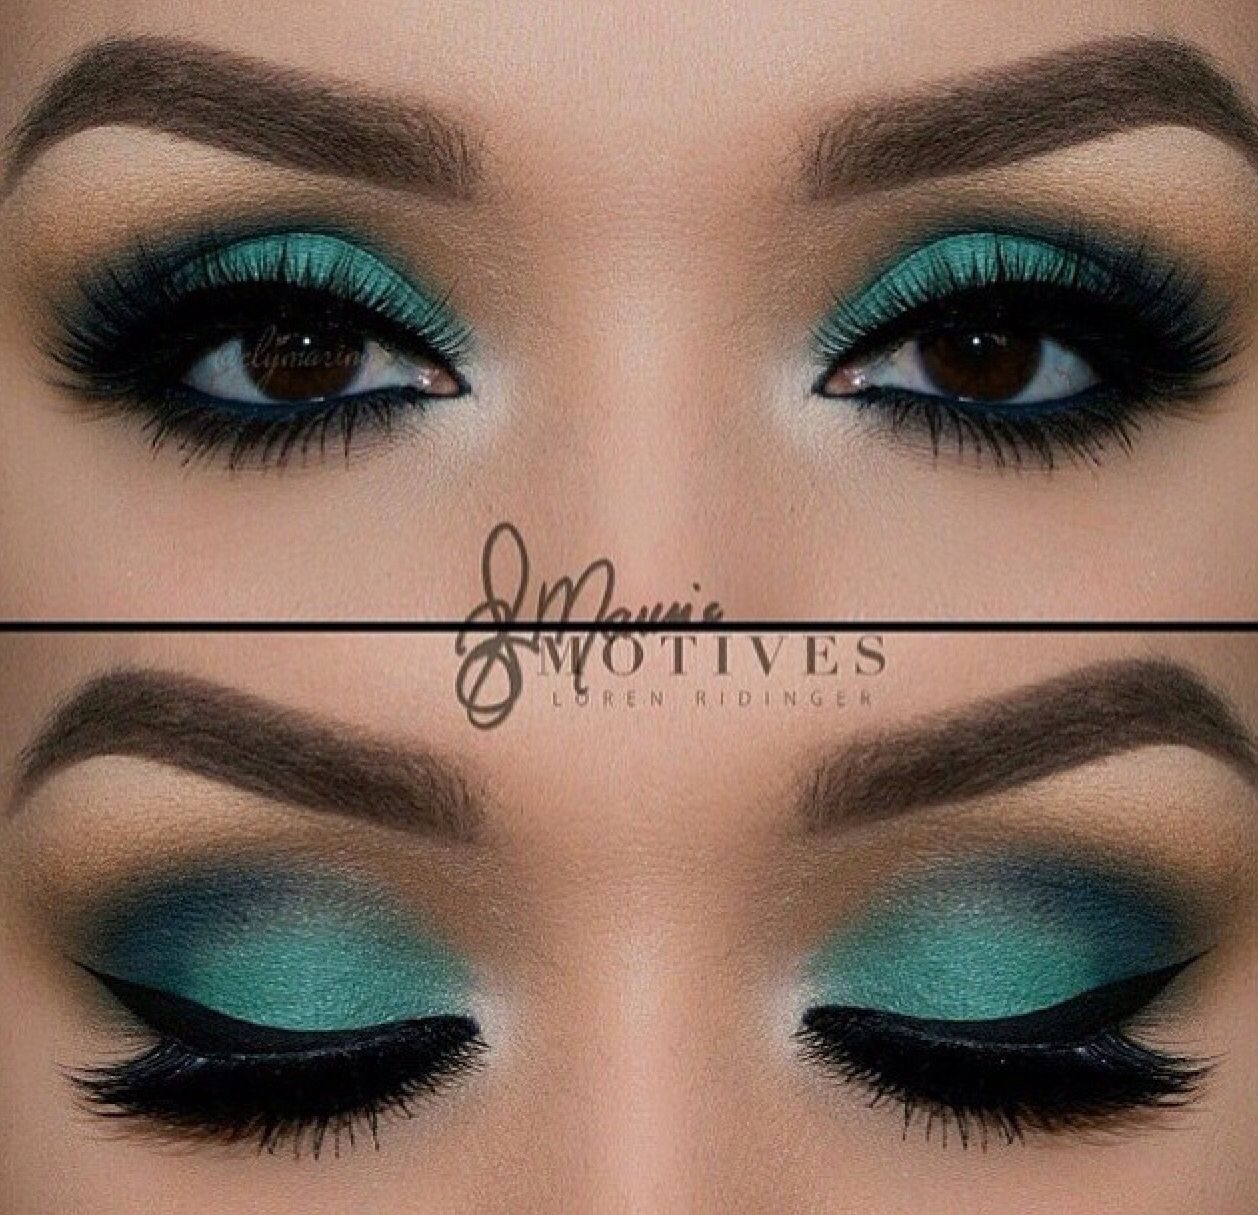 Turquoise/blue eye look! Definitely not an everyday kind